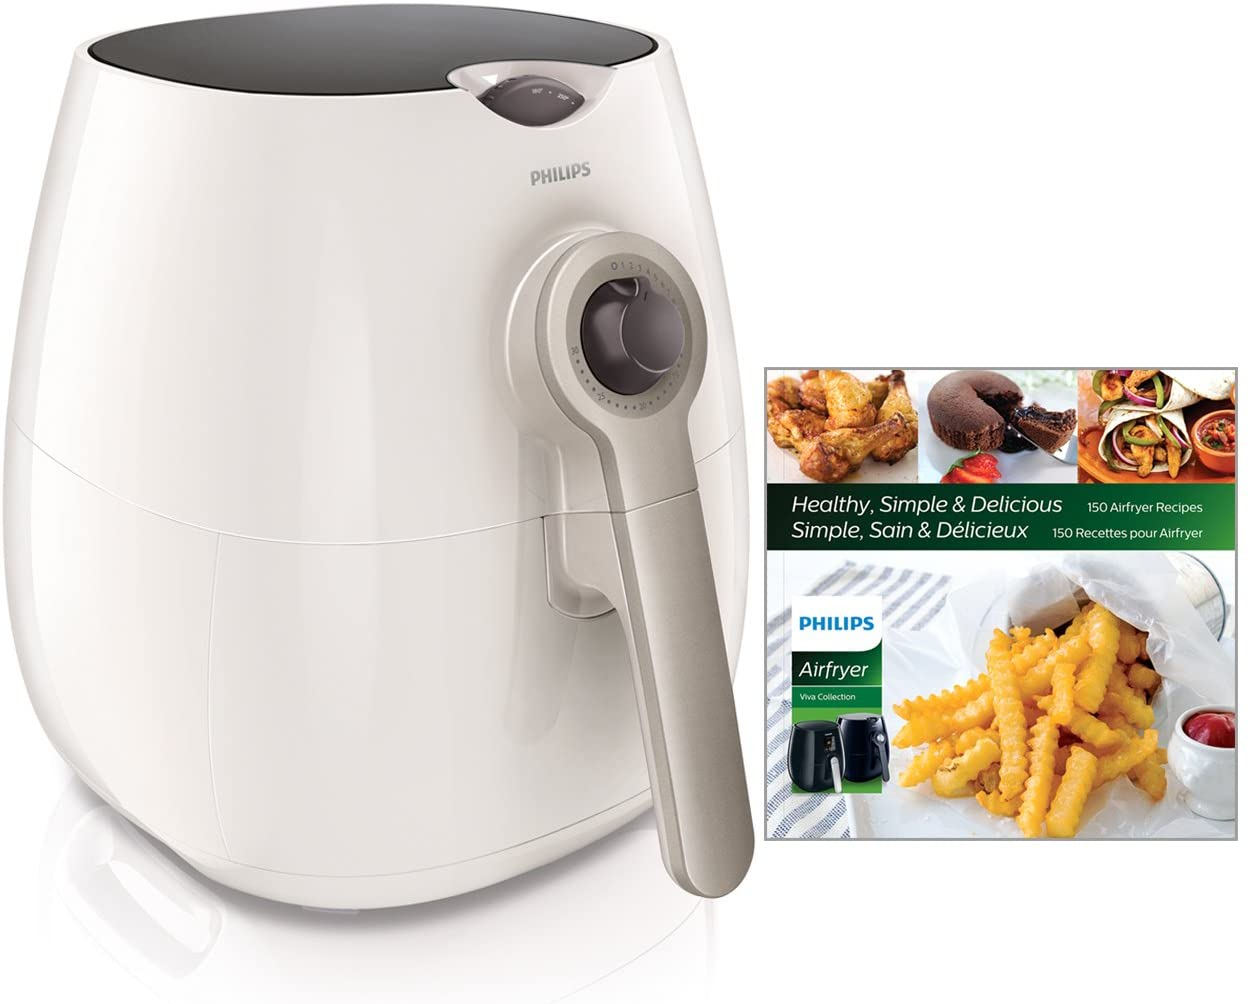 Are you tired of long cooking procedures? Well, best air fryers under $100 will definitely revolutionize your kitchen experience!